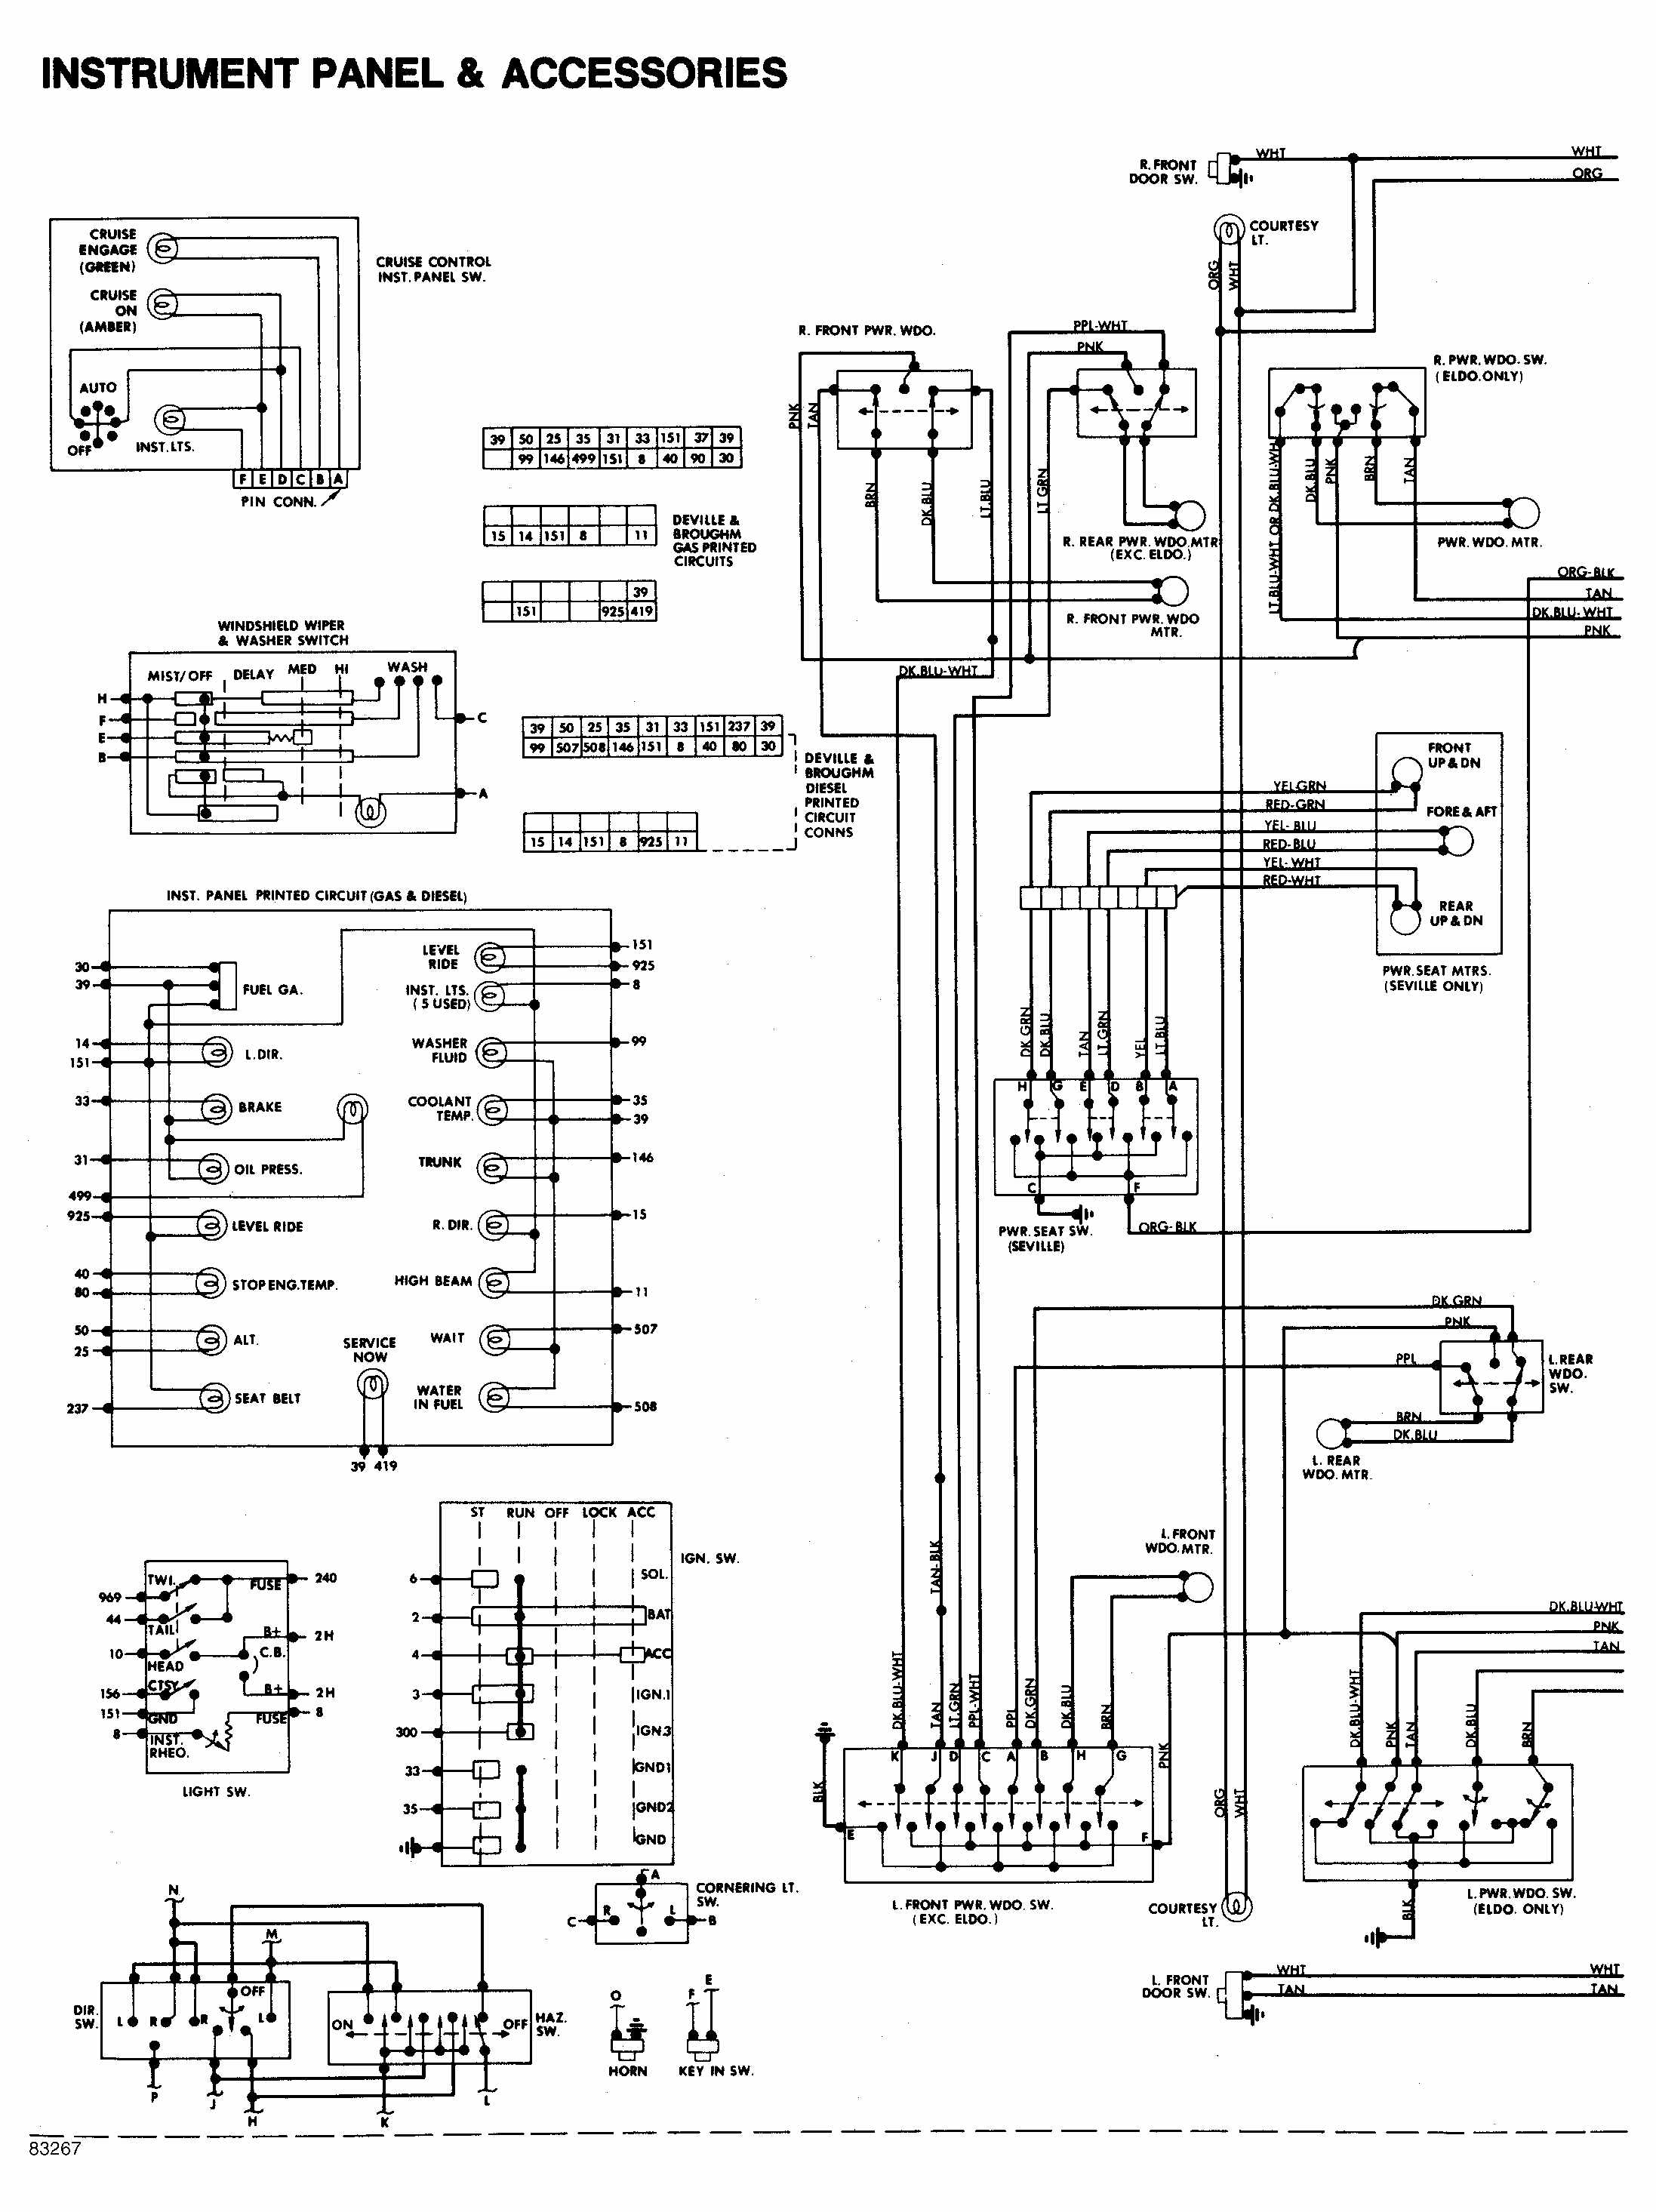 [DIAGRAM] Dodge Truck Wiring Diagrams2006 FULL Version HD